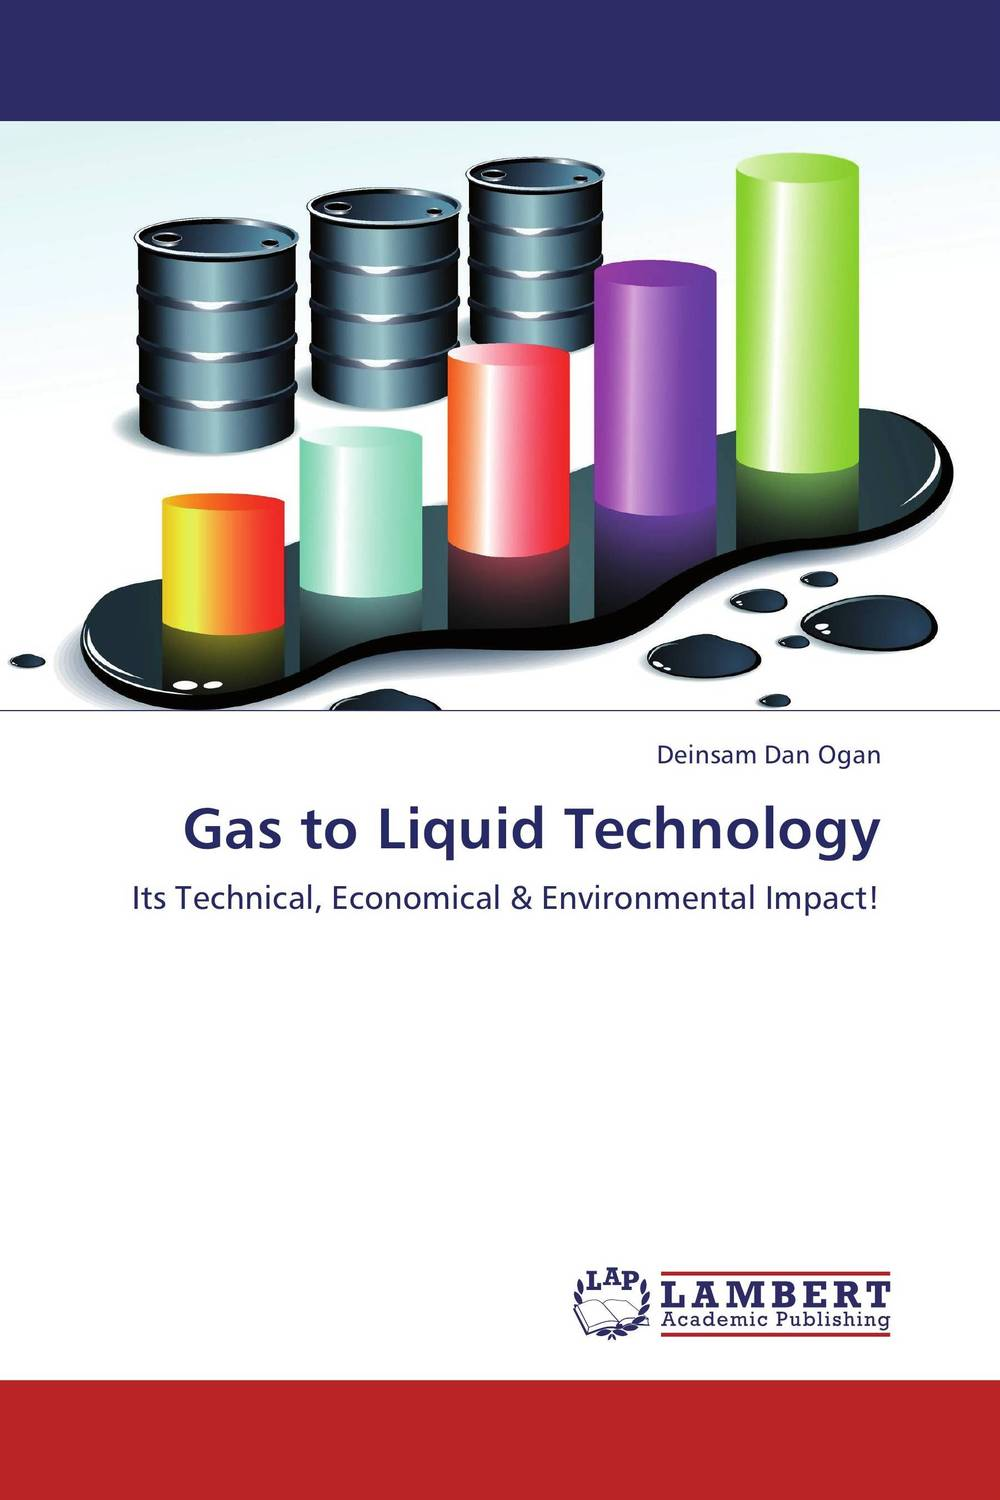 Gas to Liquid Technology estimating technically and economically recoverable unconventional gas